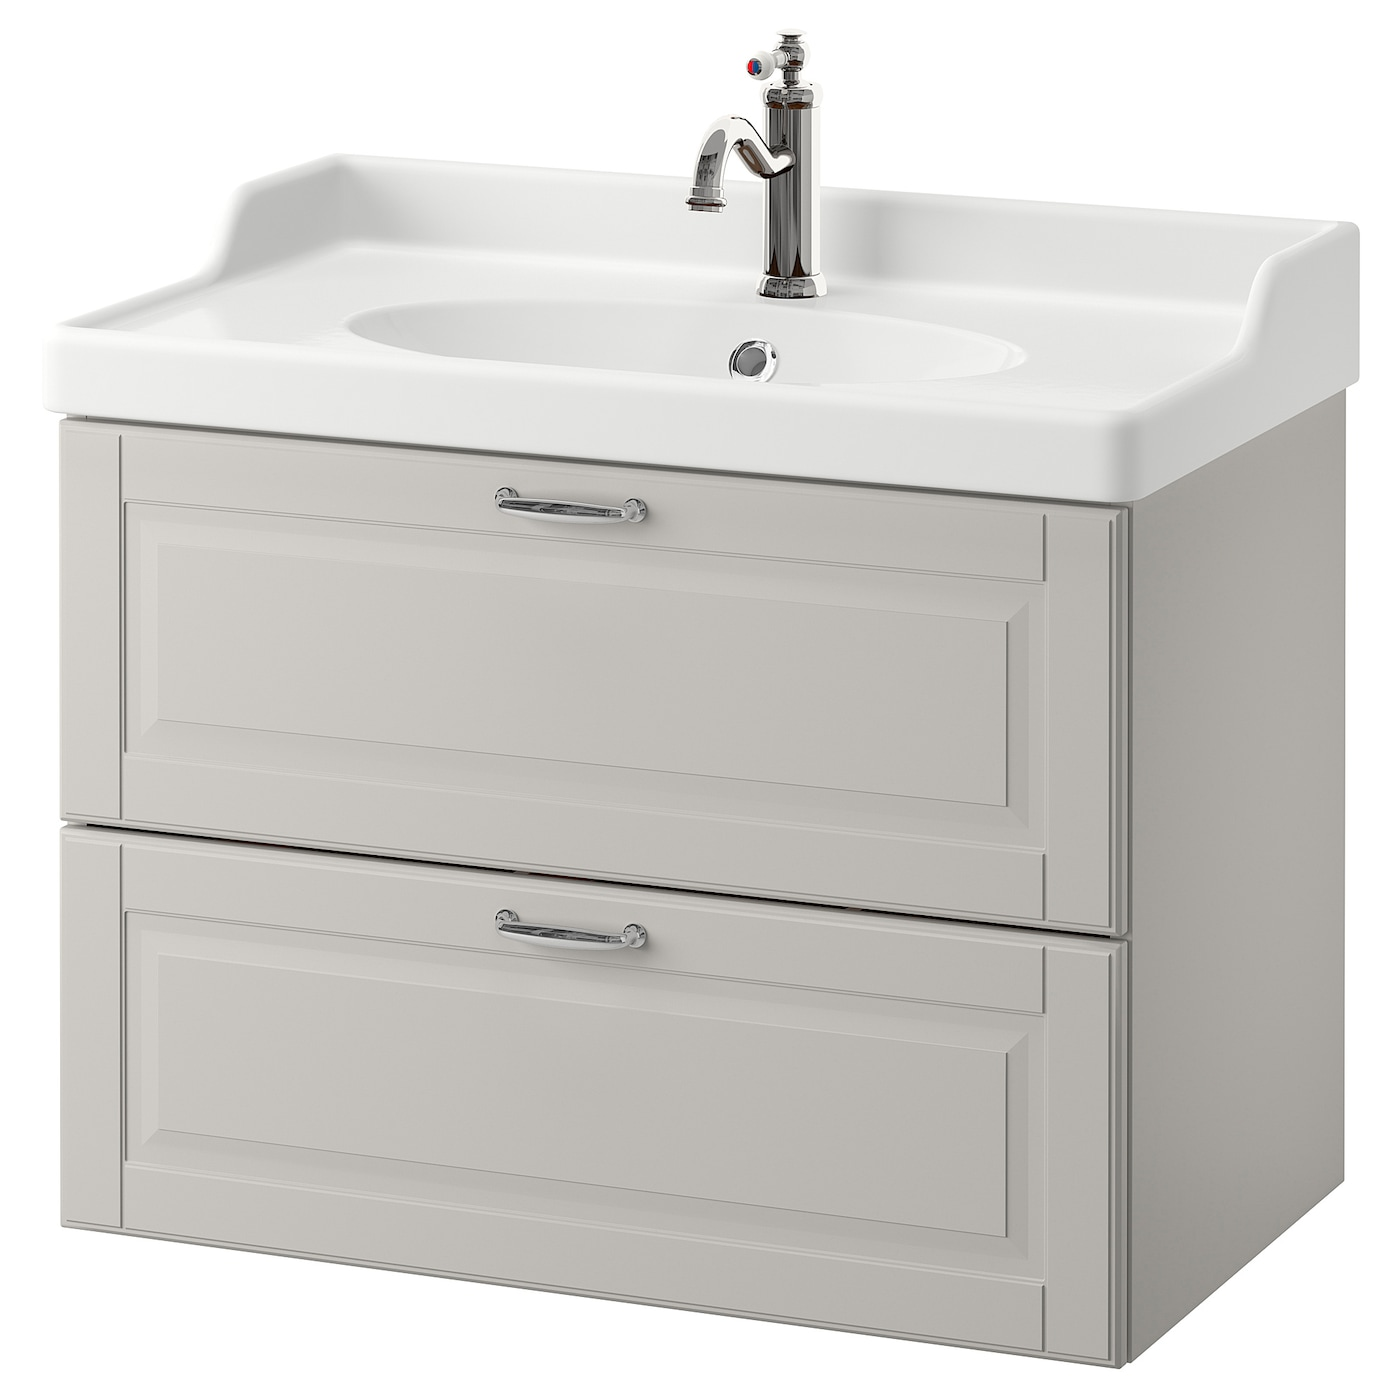 Bathroom Vanity Units - Sinks, Taps & Cabinets - IKEA